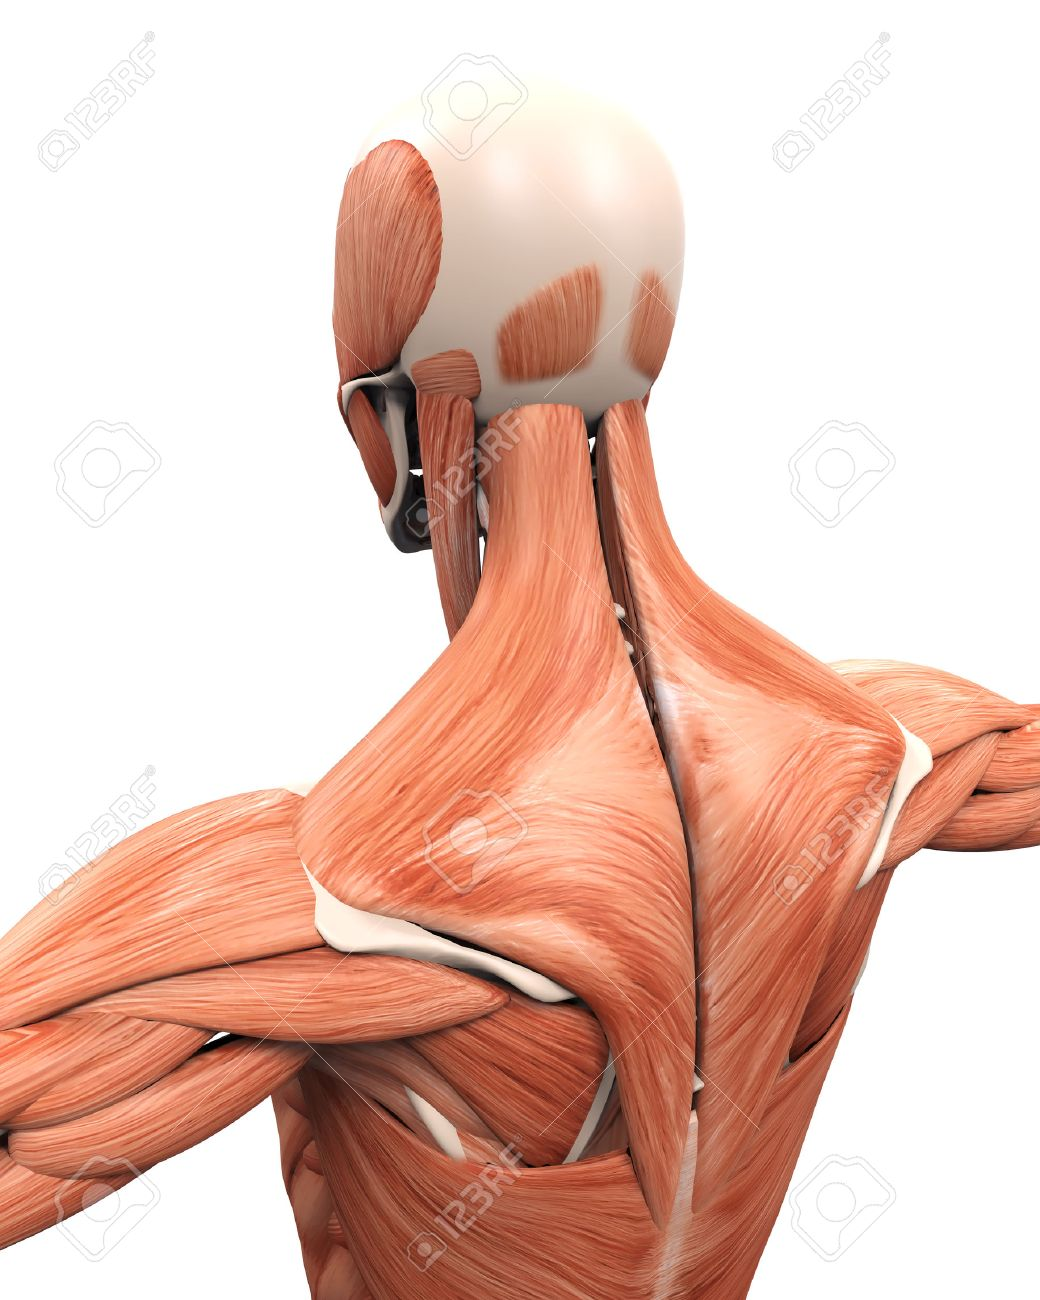 Muscular Anatomy of the Back - 32719846